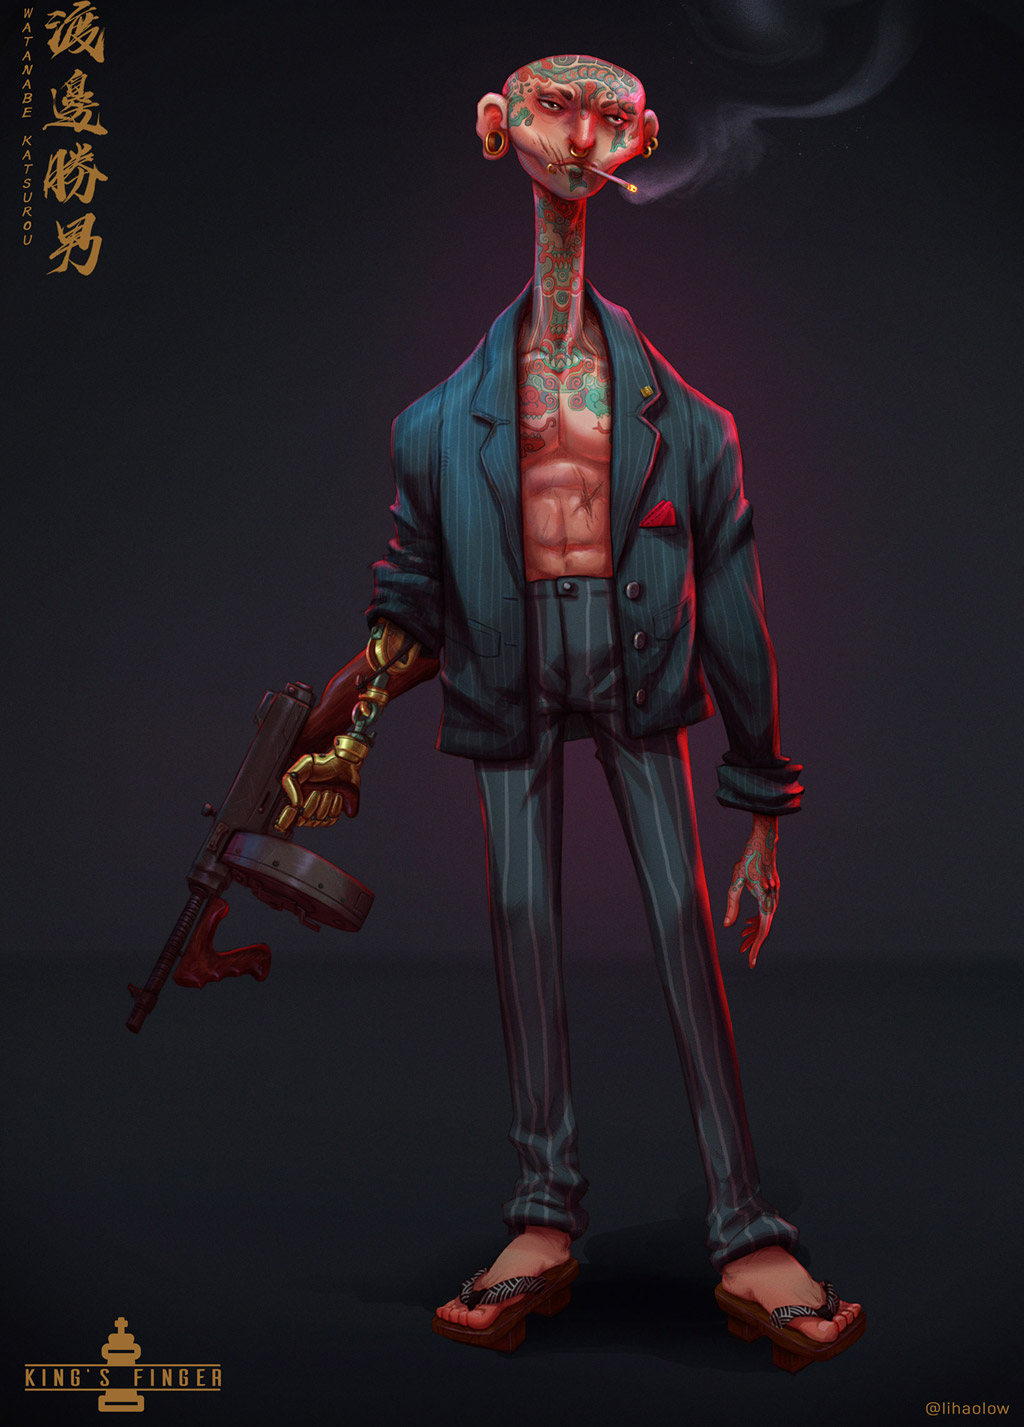 digital illustration character art mafia gangster by lihaolow